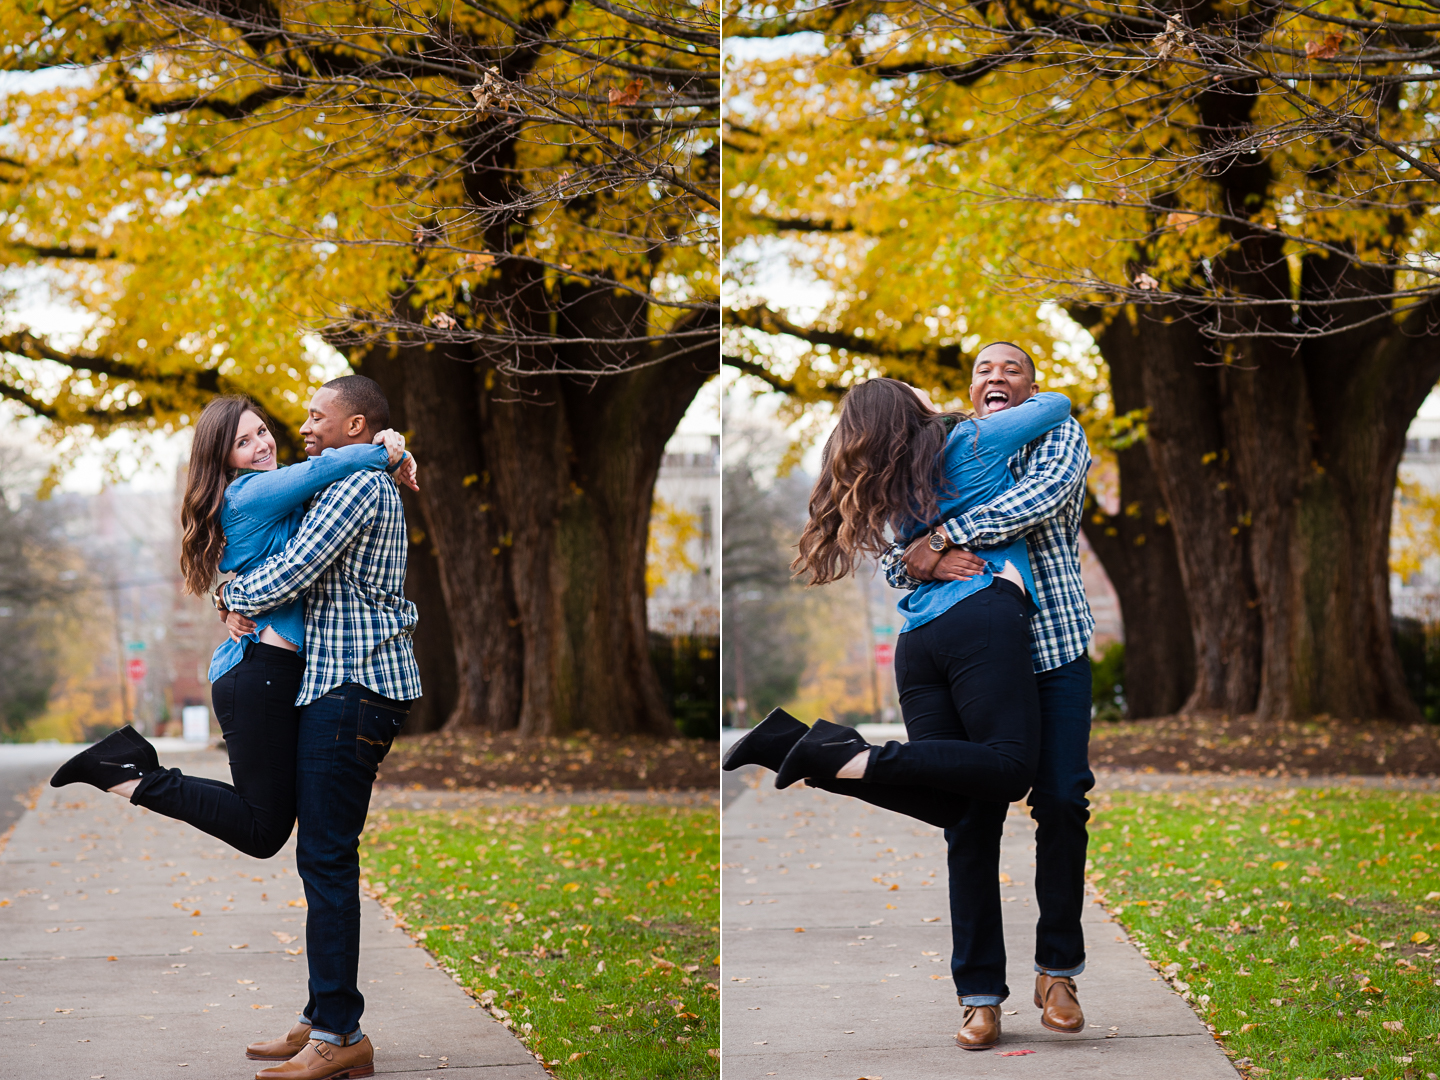 handsome husband to be spins his fiance under a bright yellow tree